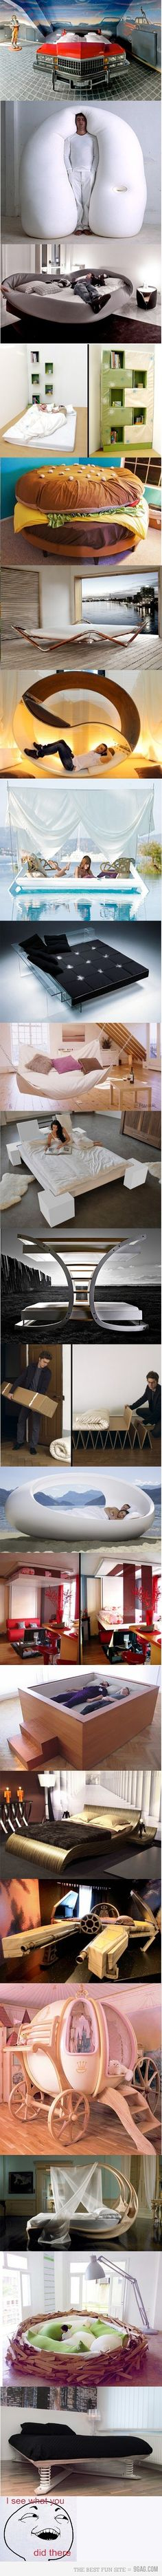 awesome beds.